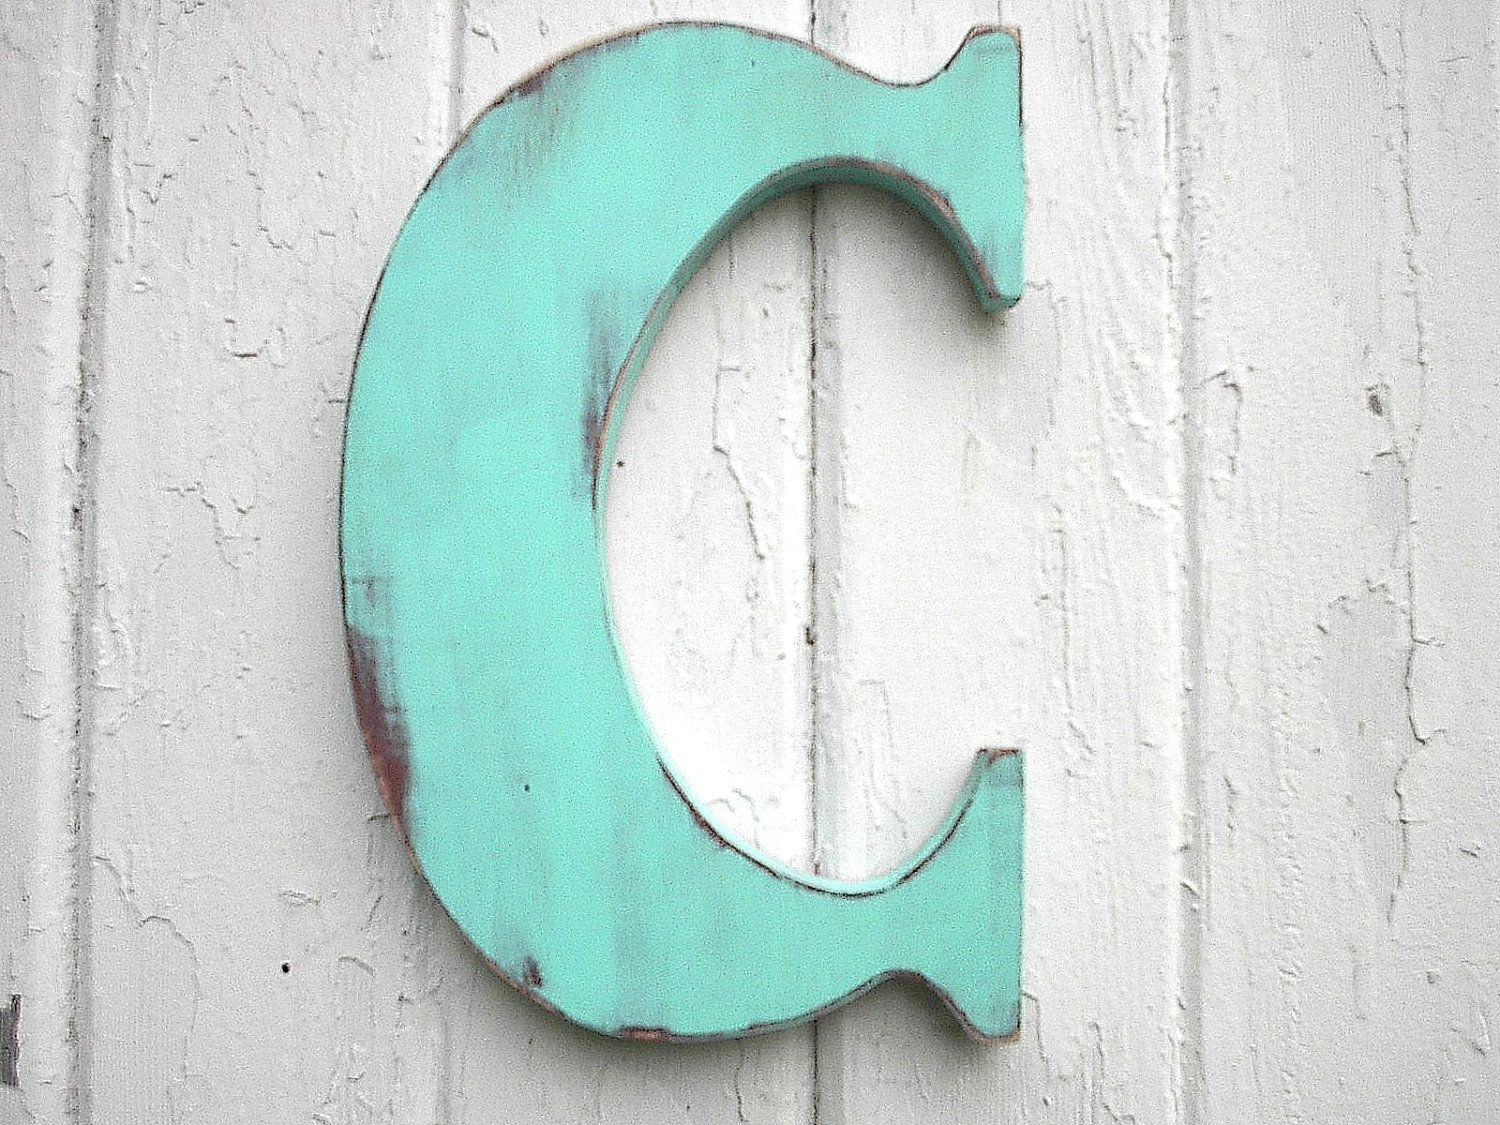 Wooden Letters Classic 12 Inch Letter C Patina Wall Decor Kids Wall Art Initial Vintage Style Shabby Chic Cabin Cottage Dorm Decor Shabby Chic Letters Art Wall Kids Shabby Chic Cabin